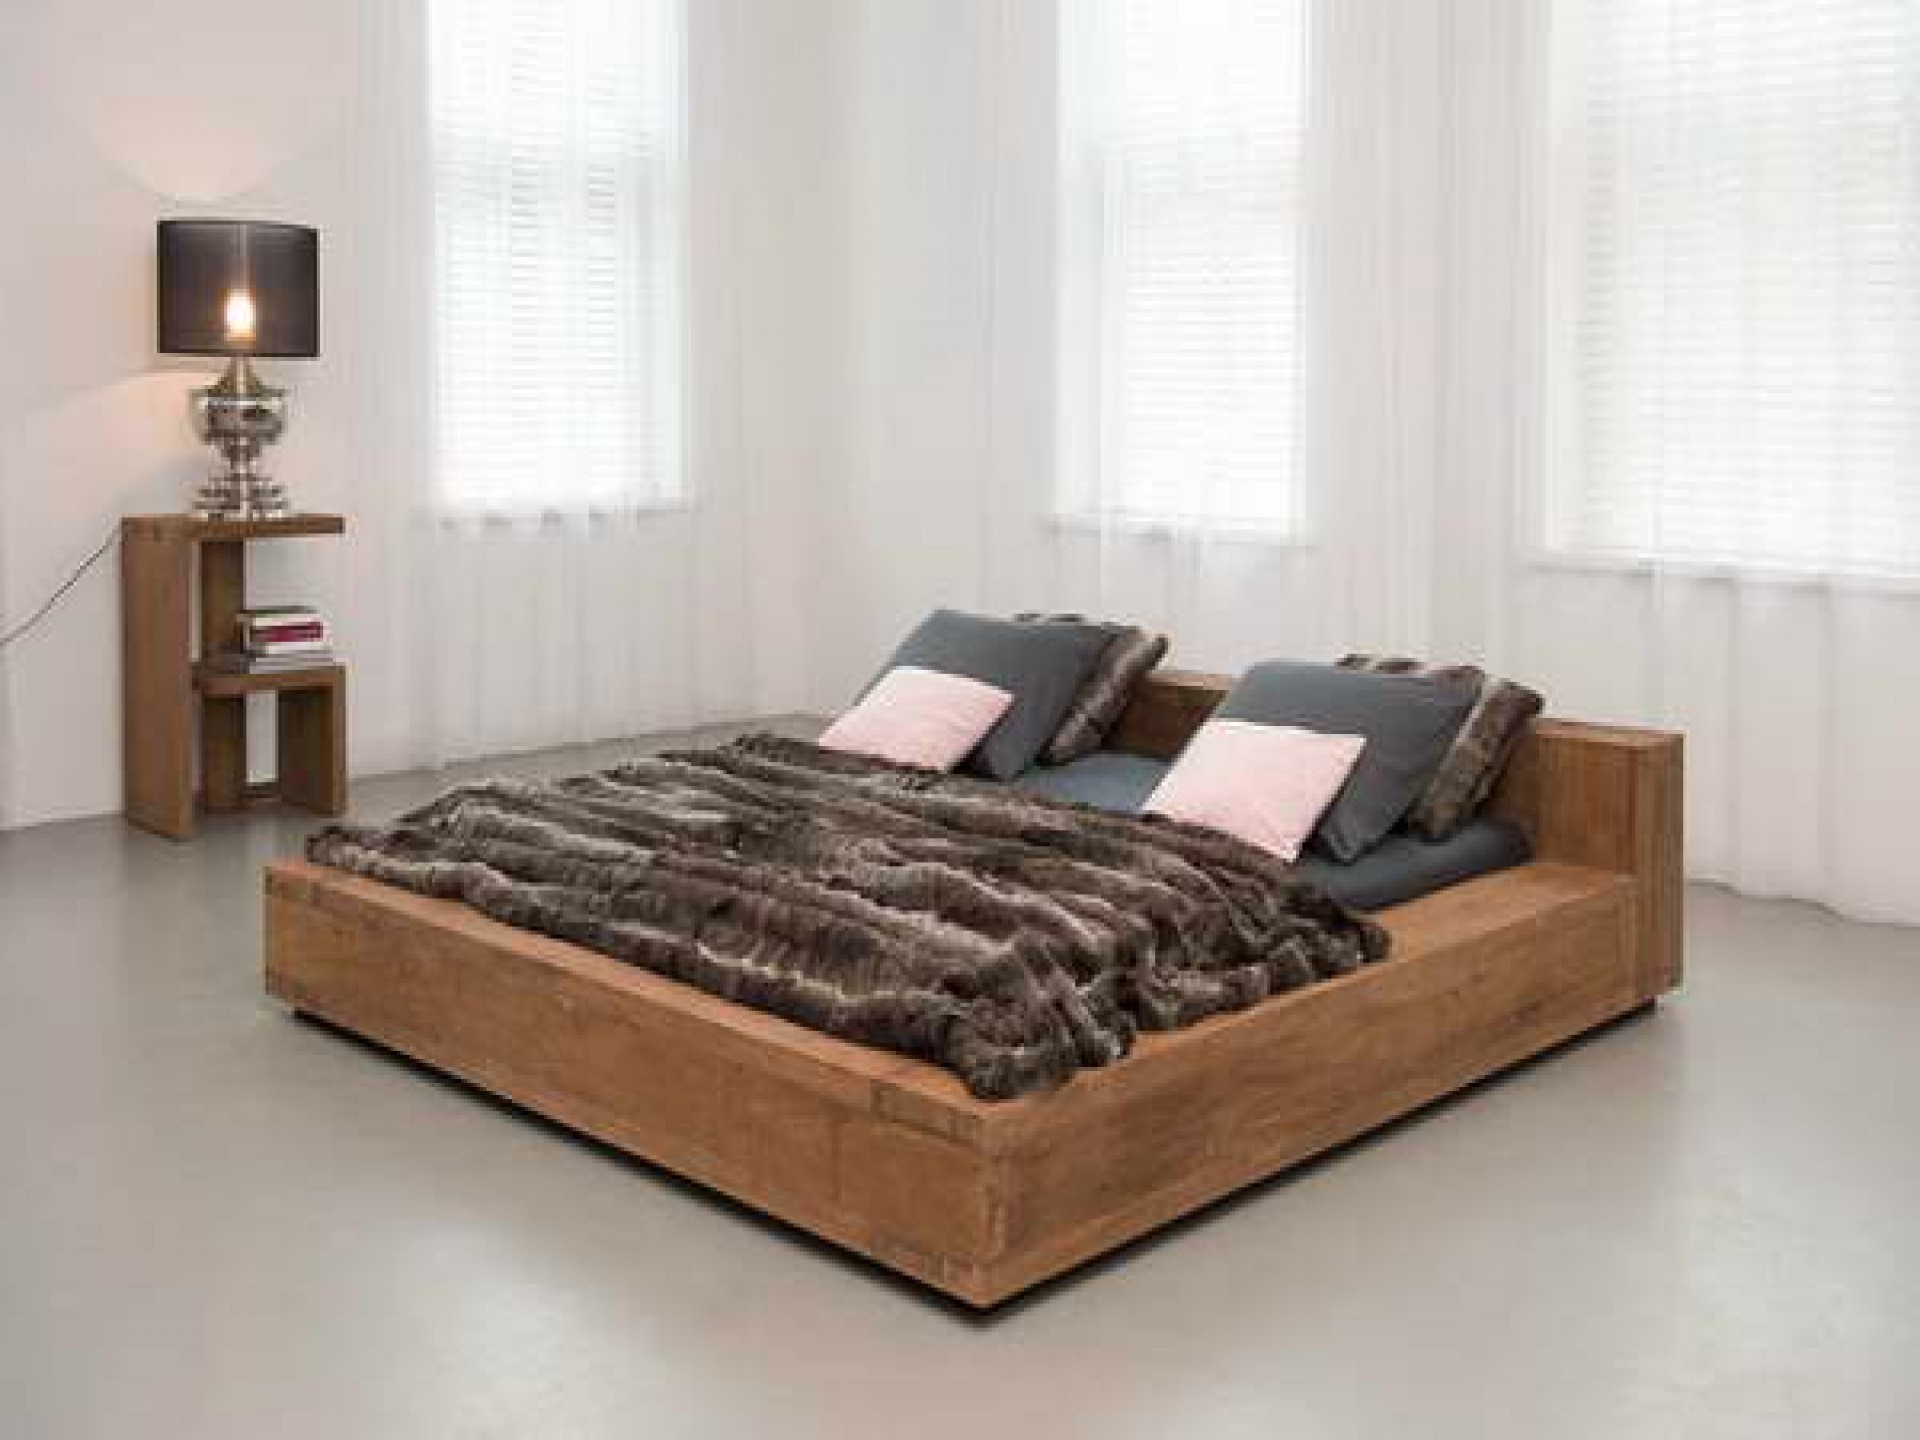 bedroom low profile wood fur blanket bed frame candle light shader curtain